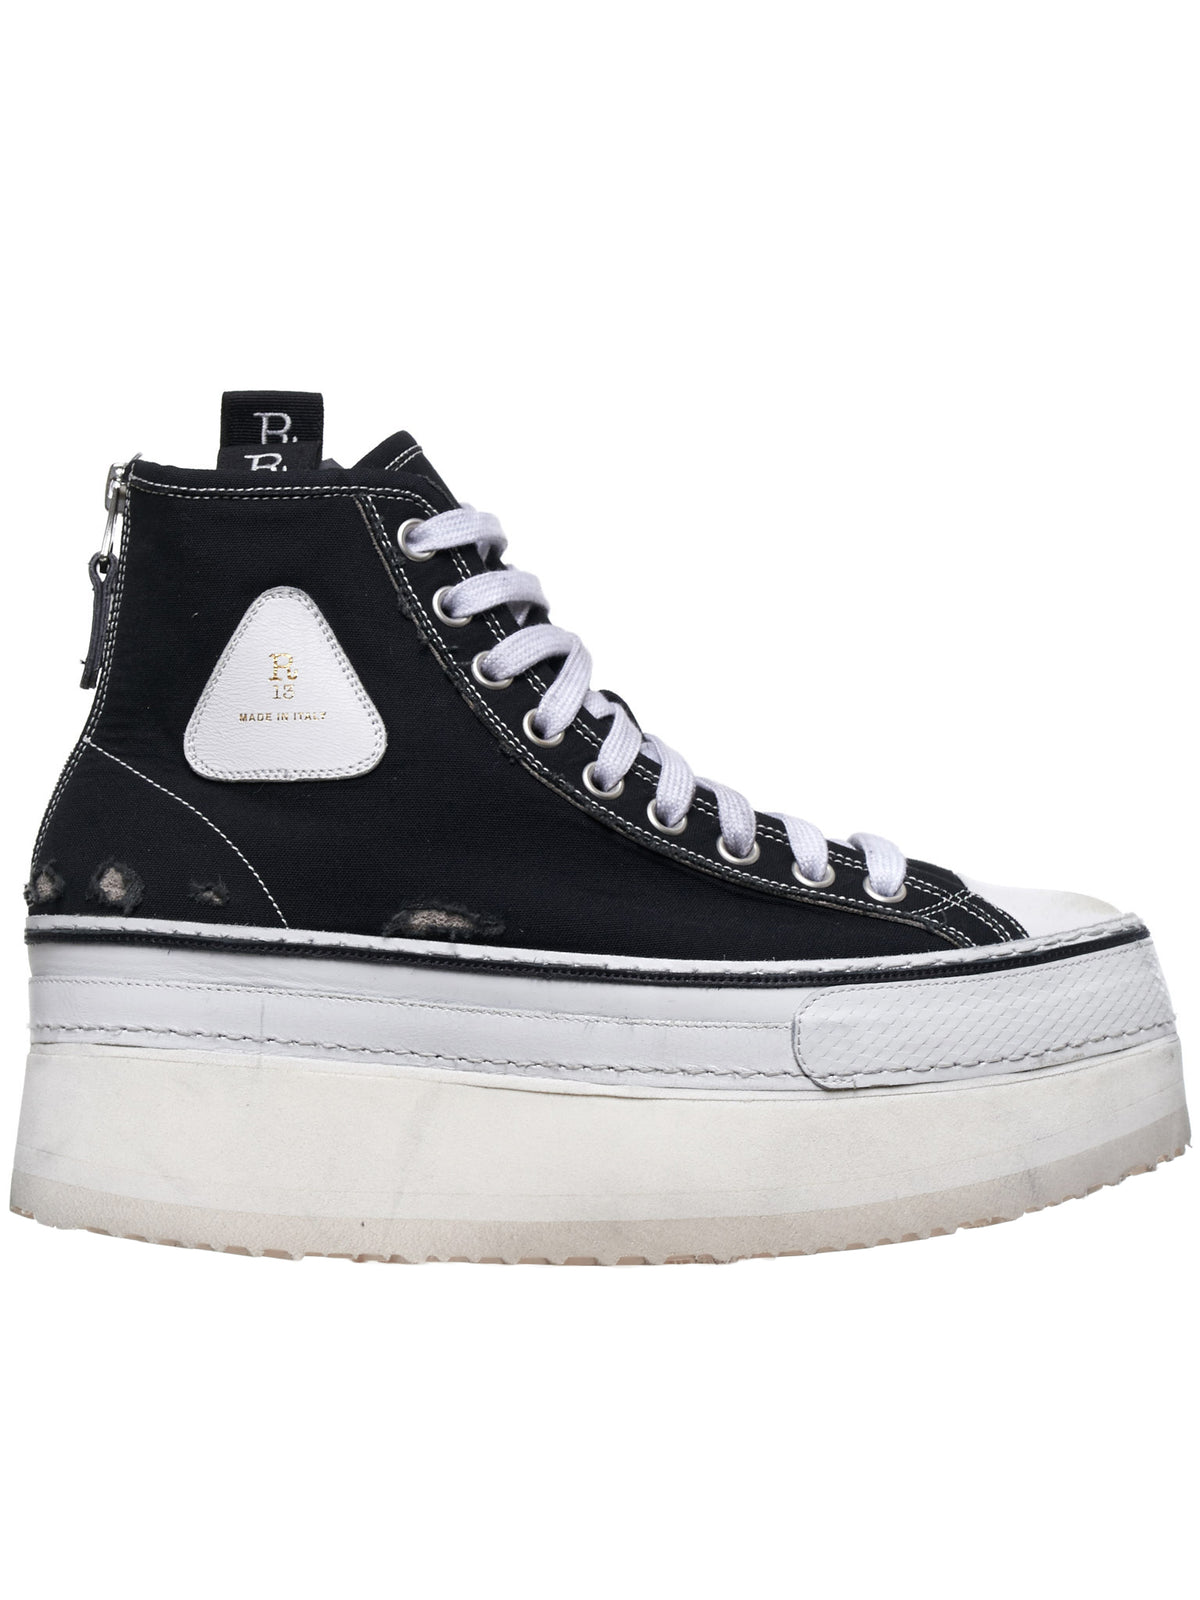 Platform High Top Sneakers (0070-150-BLACK)